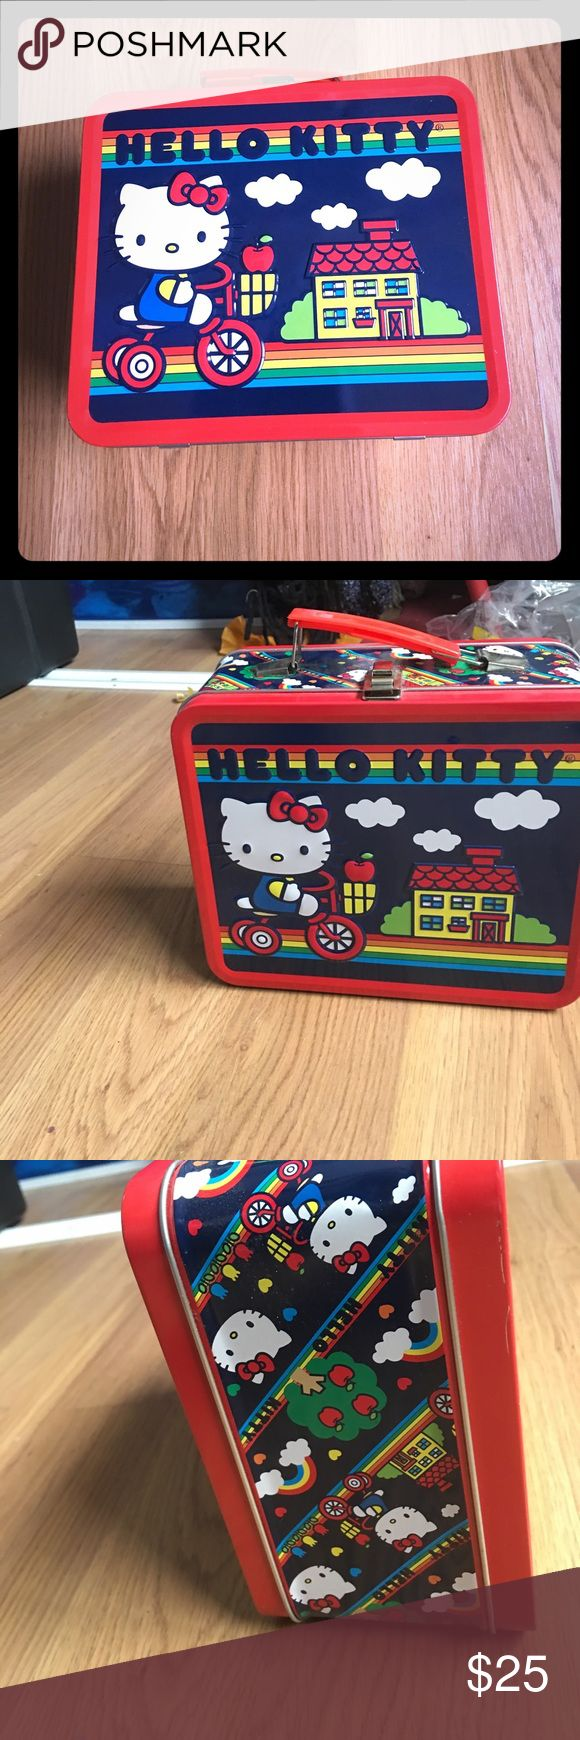 Hello kitty by Sanrio metal lunch box Hello kitty metal lunch box. Great shape. Great to use for lunches, or purse or crafts or to display as decoration sanrio hello kitty Bags